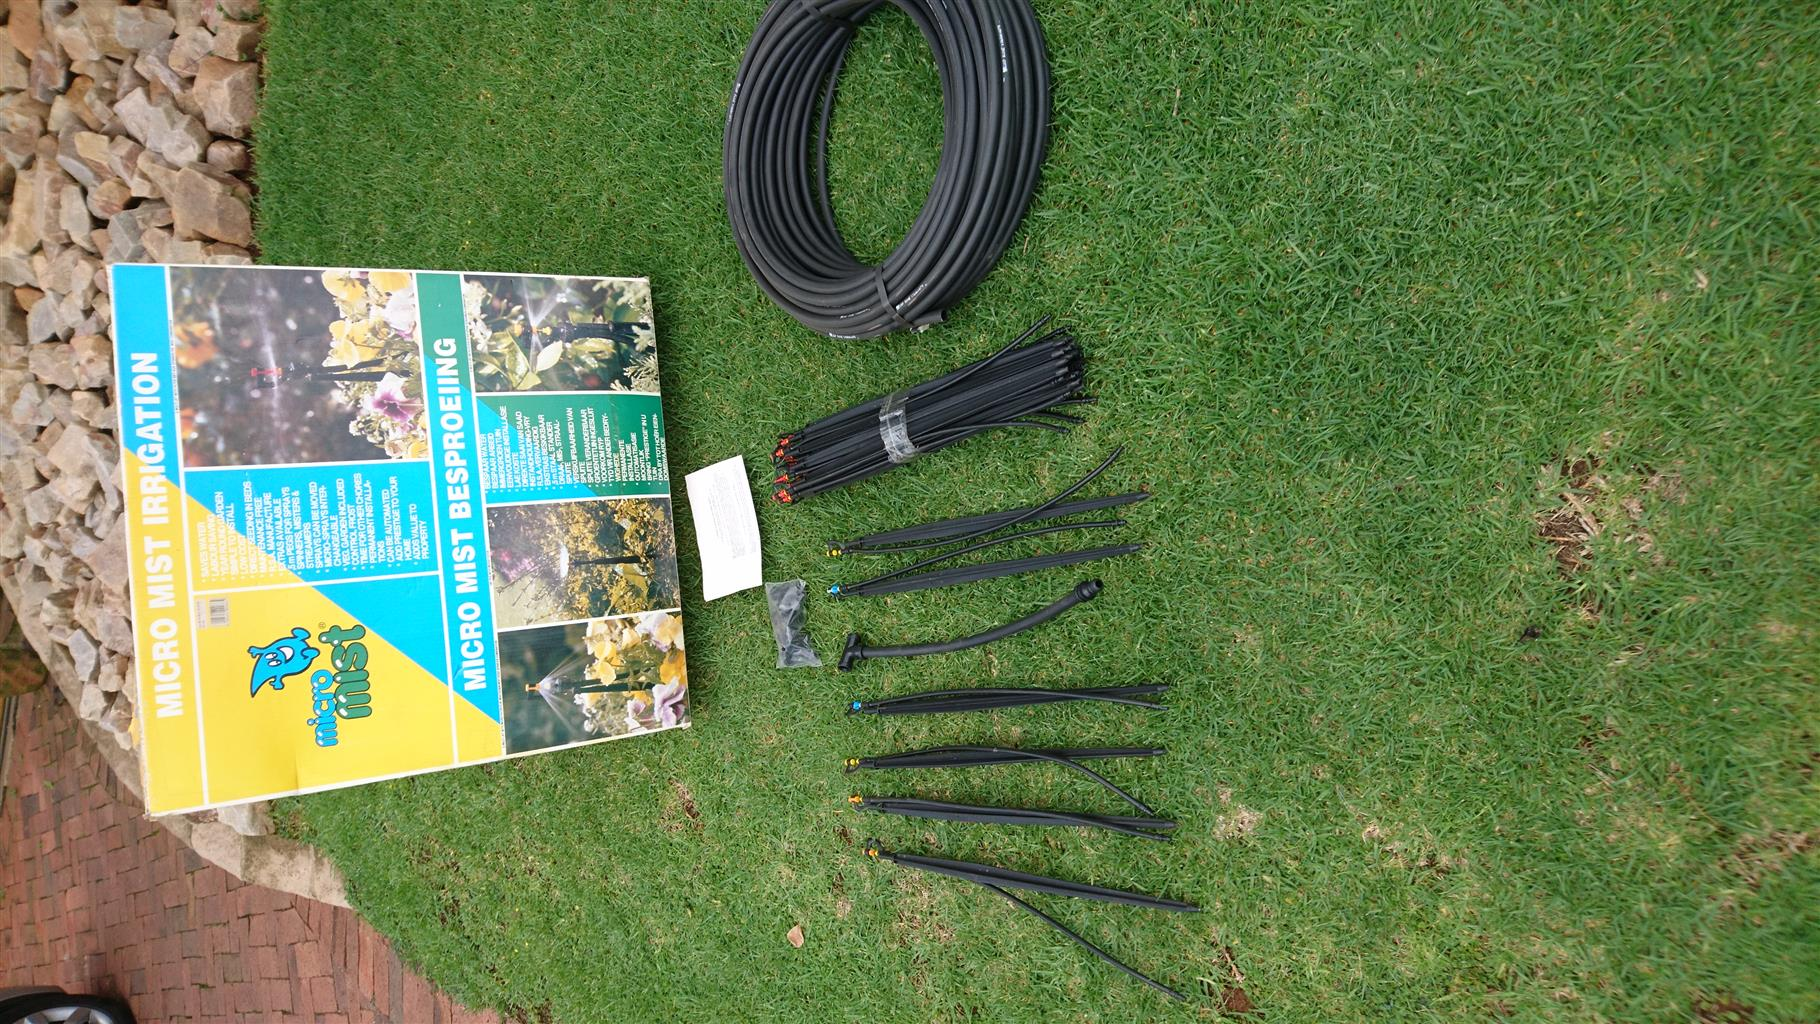 Irrigation system - Micro mist - new, in box